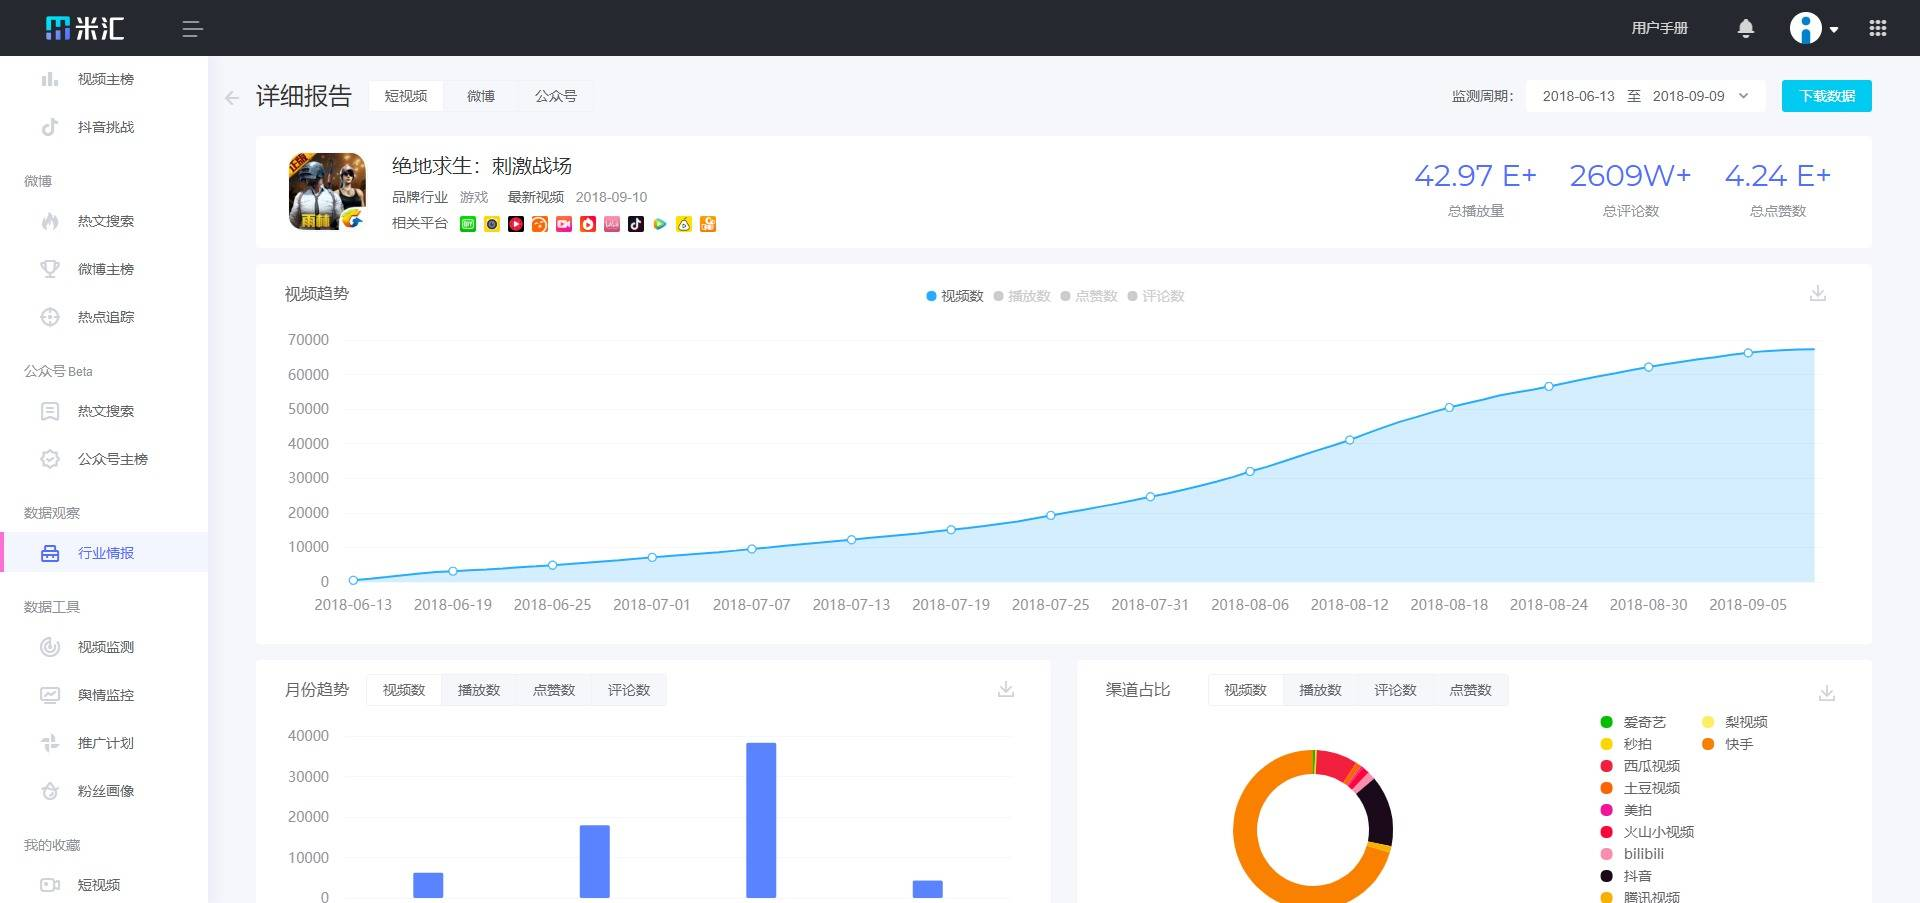 FireShot Capture 3 - 行业情报-详细报告_ - https___ccsight.cn_data_video_co.png